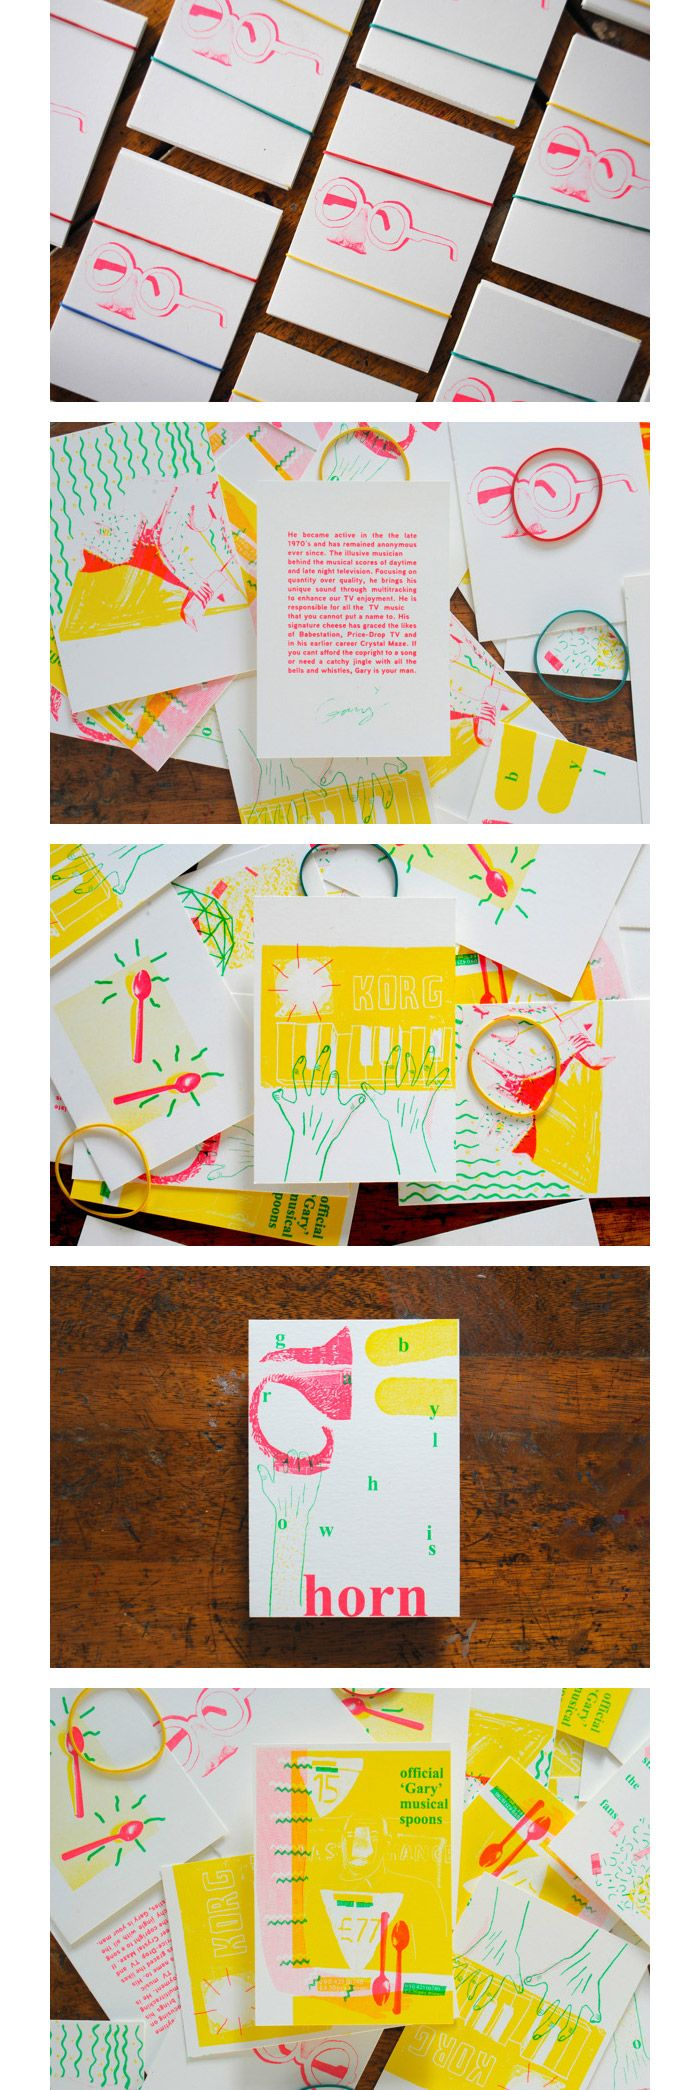 Oliver Elliott & Alex Penny / Illustration & silkscreened postcards - Gary the Musical Enigma